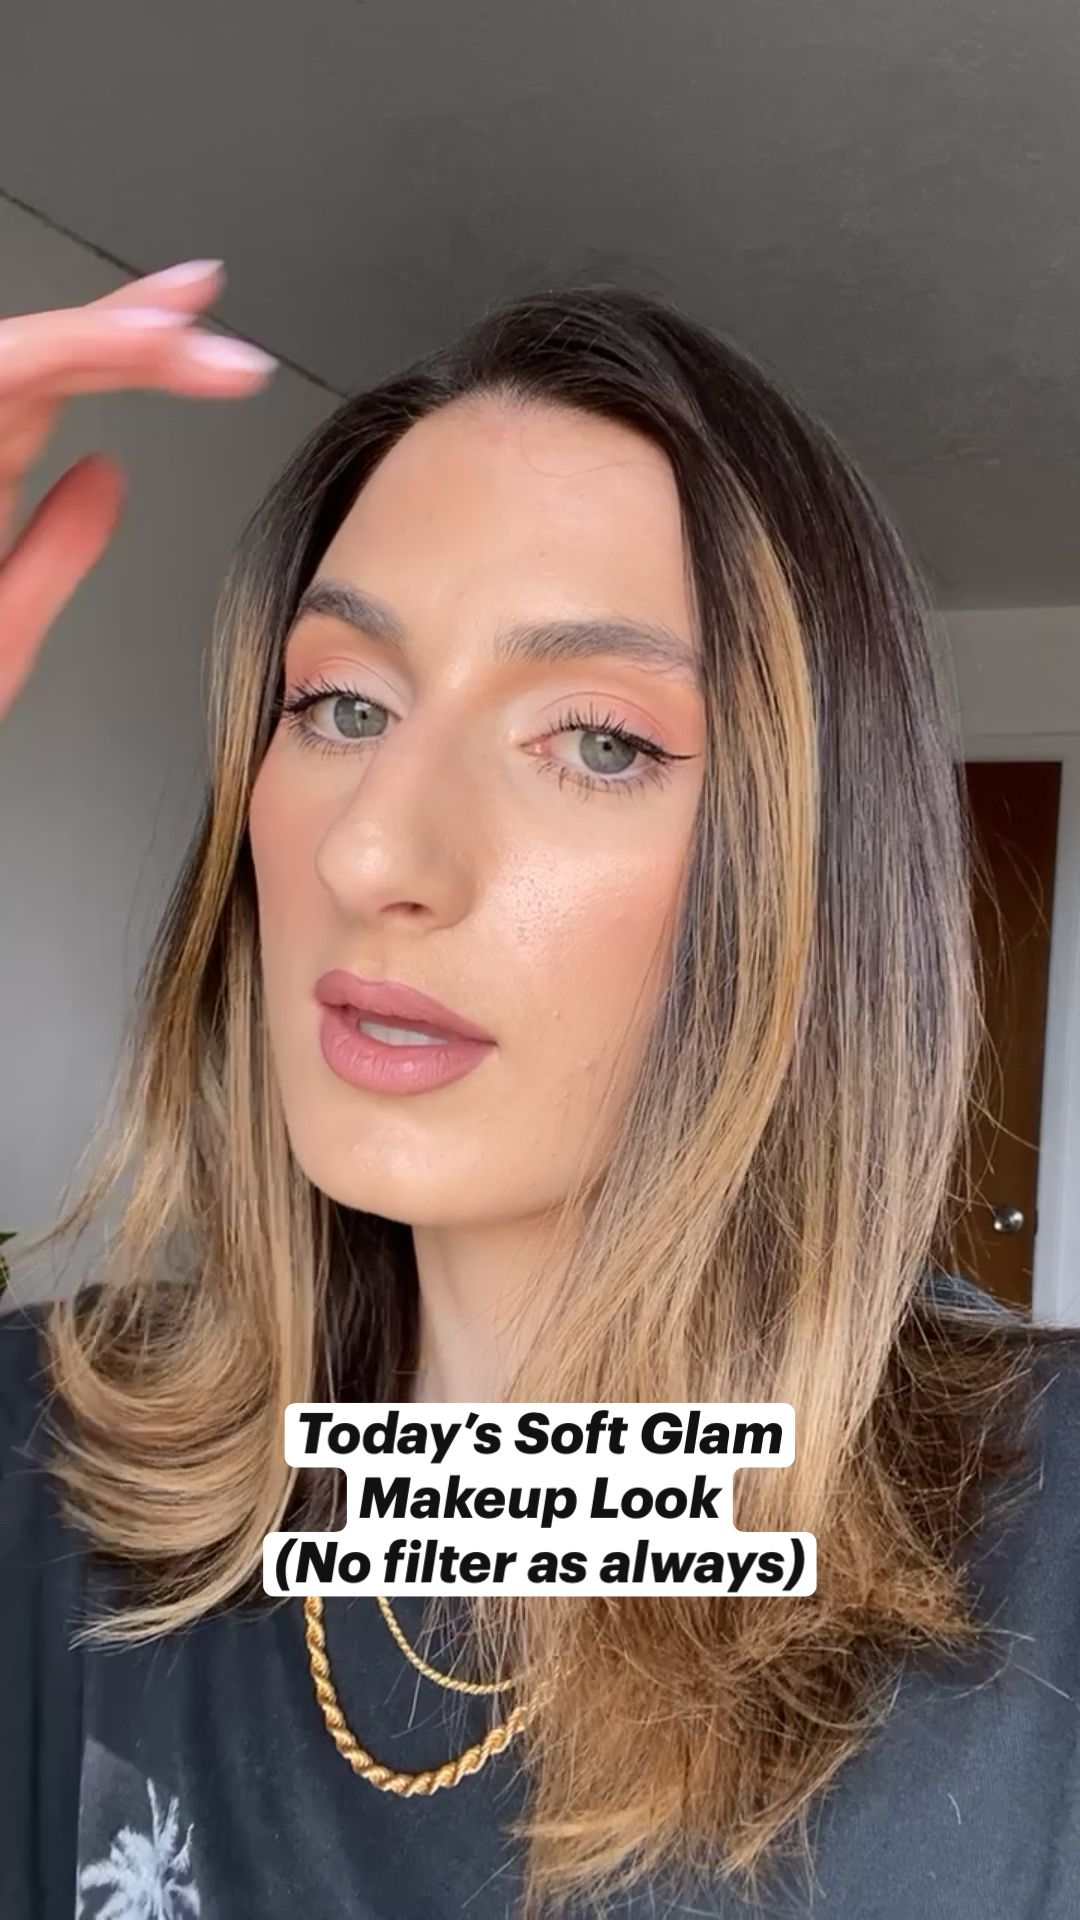 Soft Glam Pink Peachy Makeup Look by Haley Ivers @haleyivers